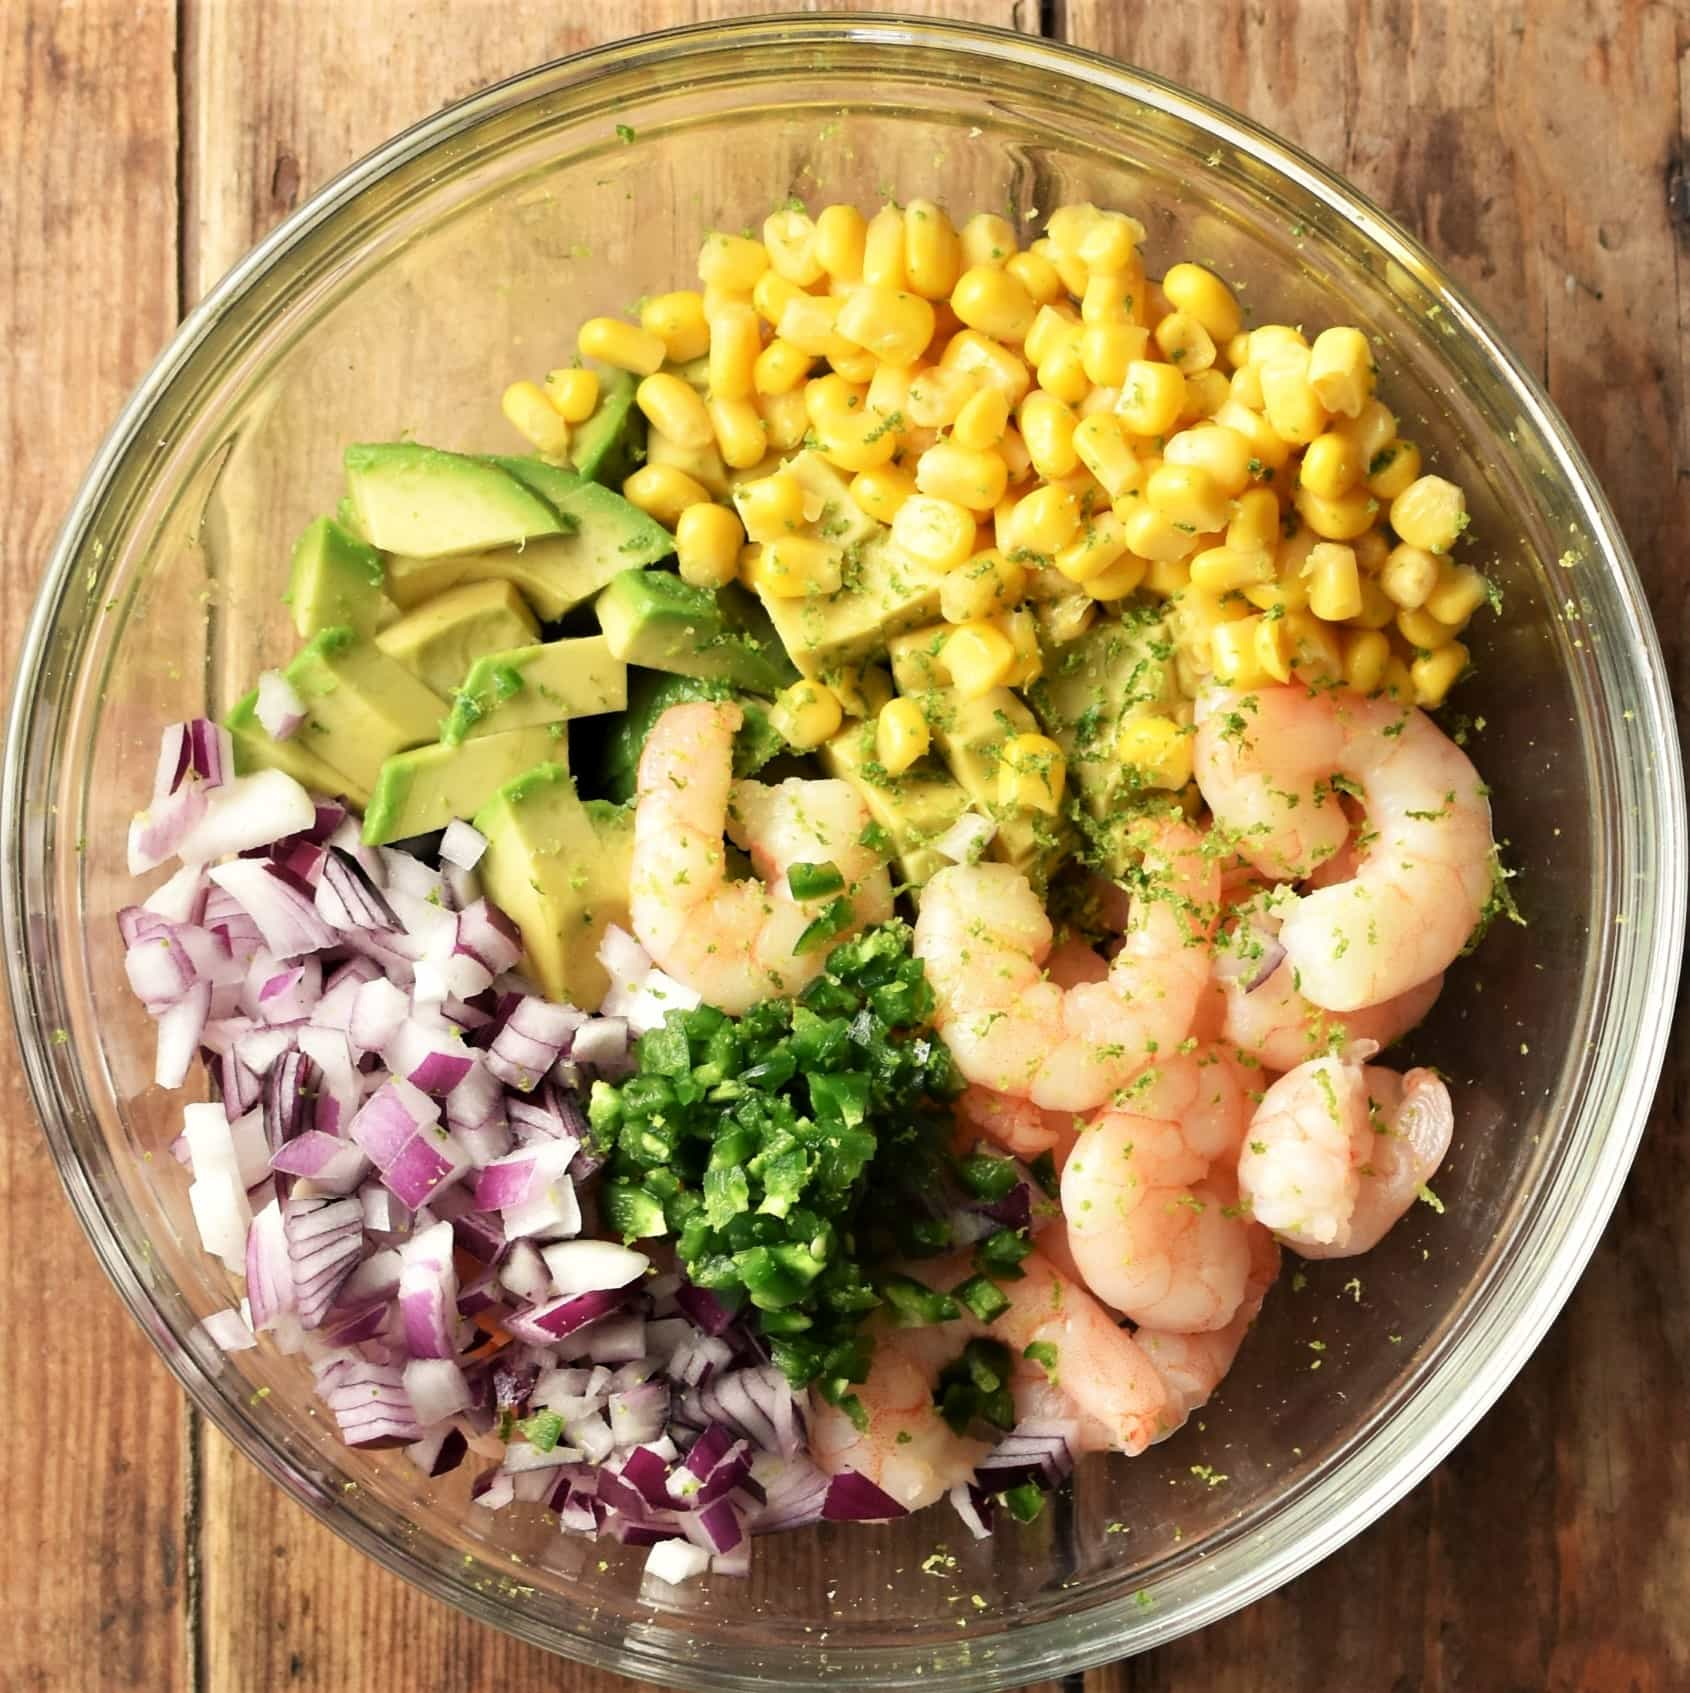 Shrimp, diced avocado, corn, chopped red onion and herbs in mixing bowl.